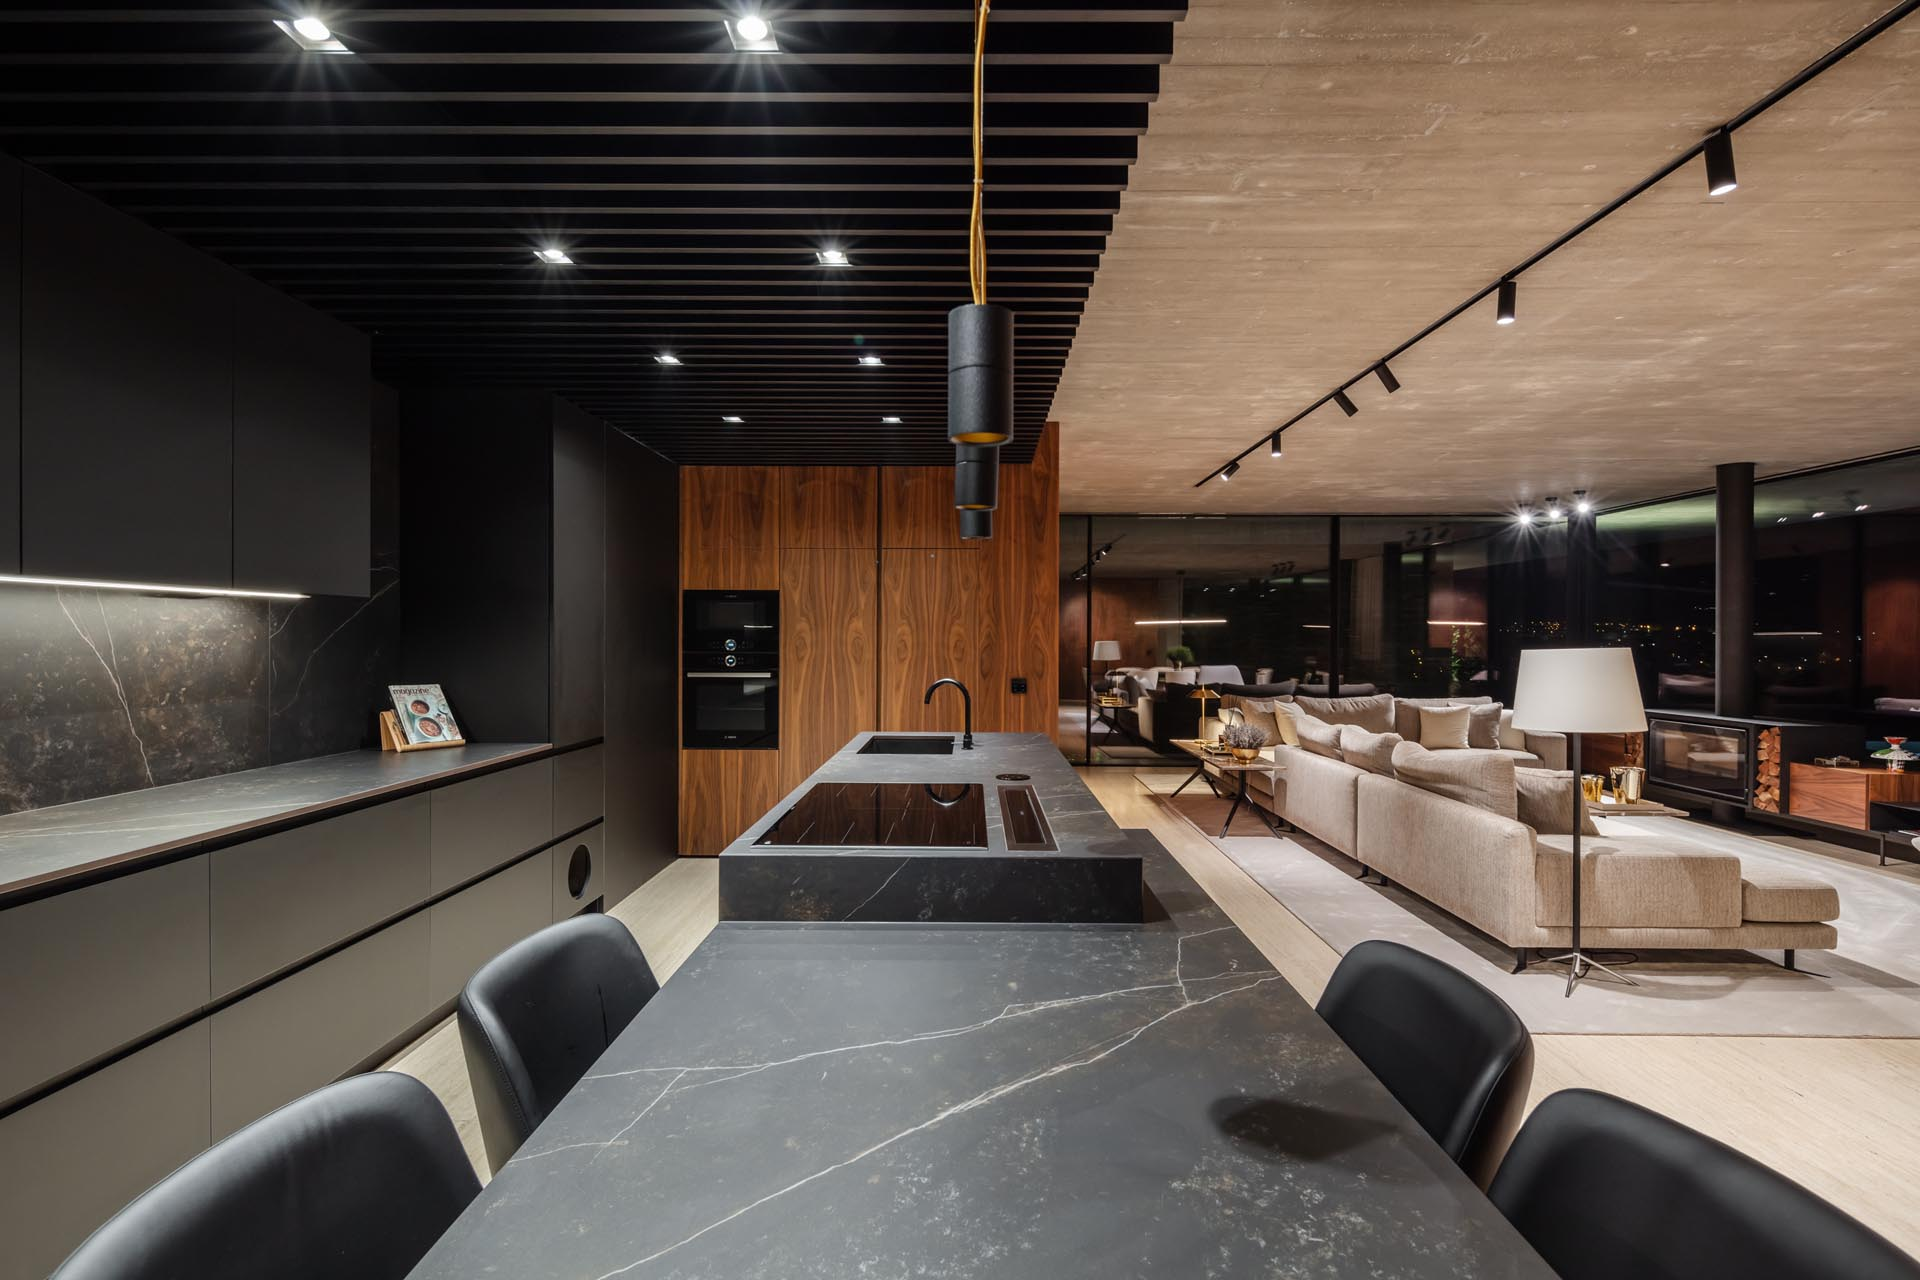 A modern black kitchen includes a large island with dark gray stone, seating for four people, a cooktop, and a undermount sink.